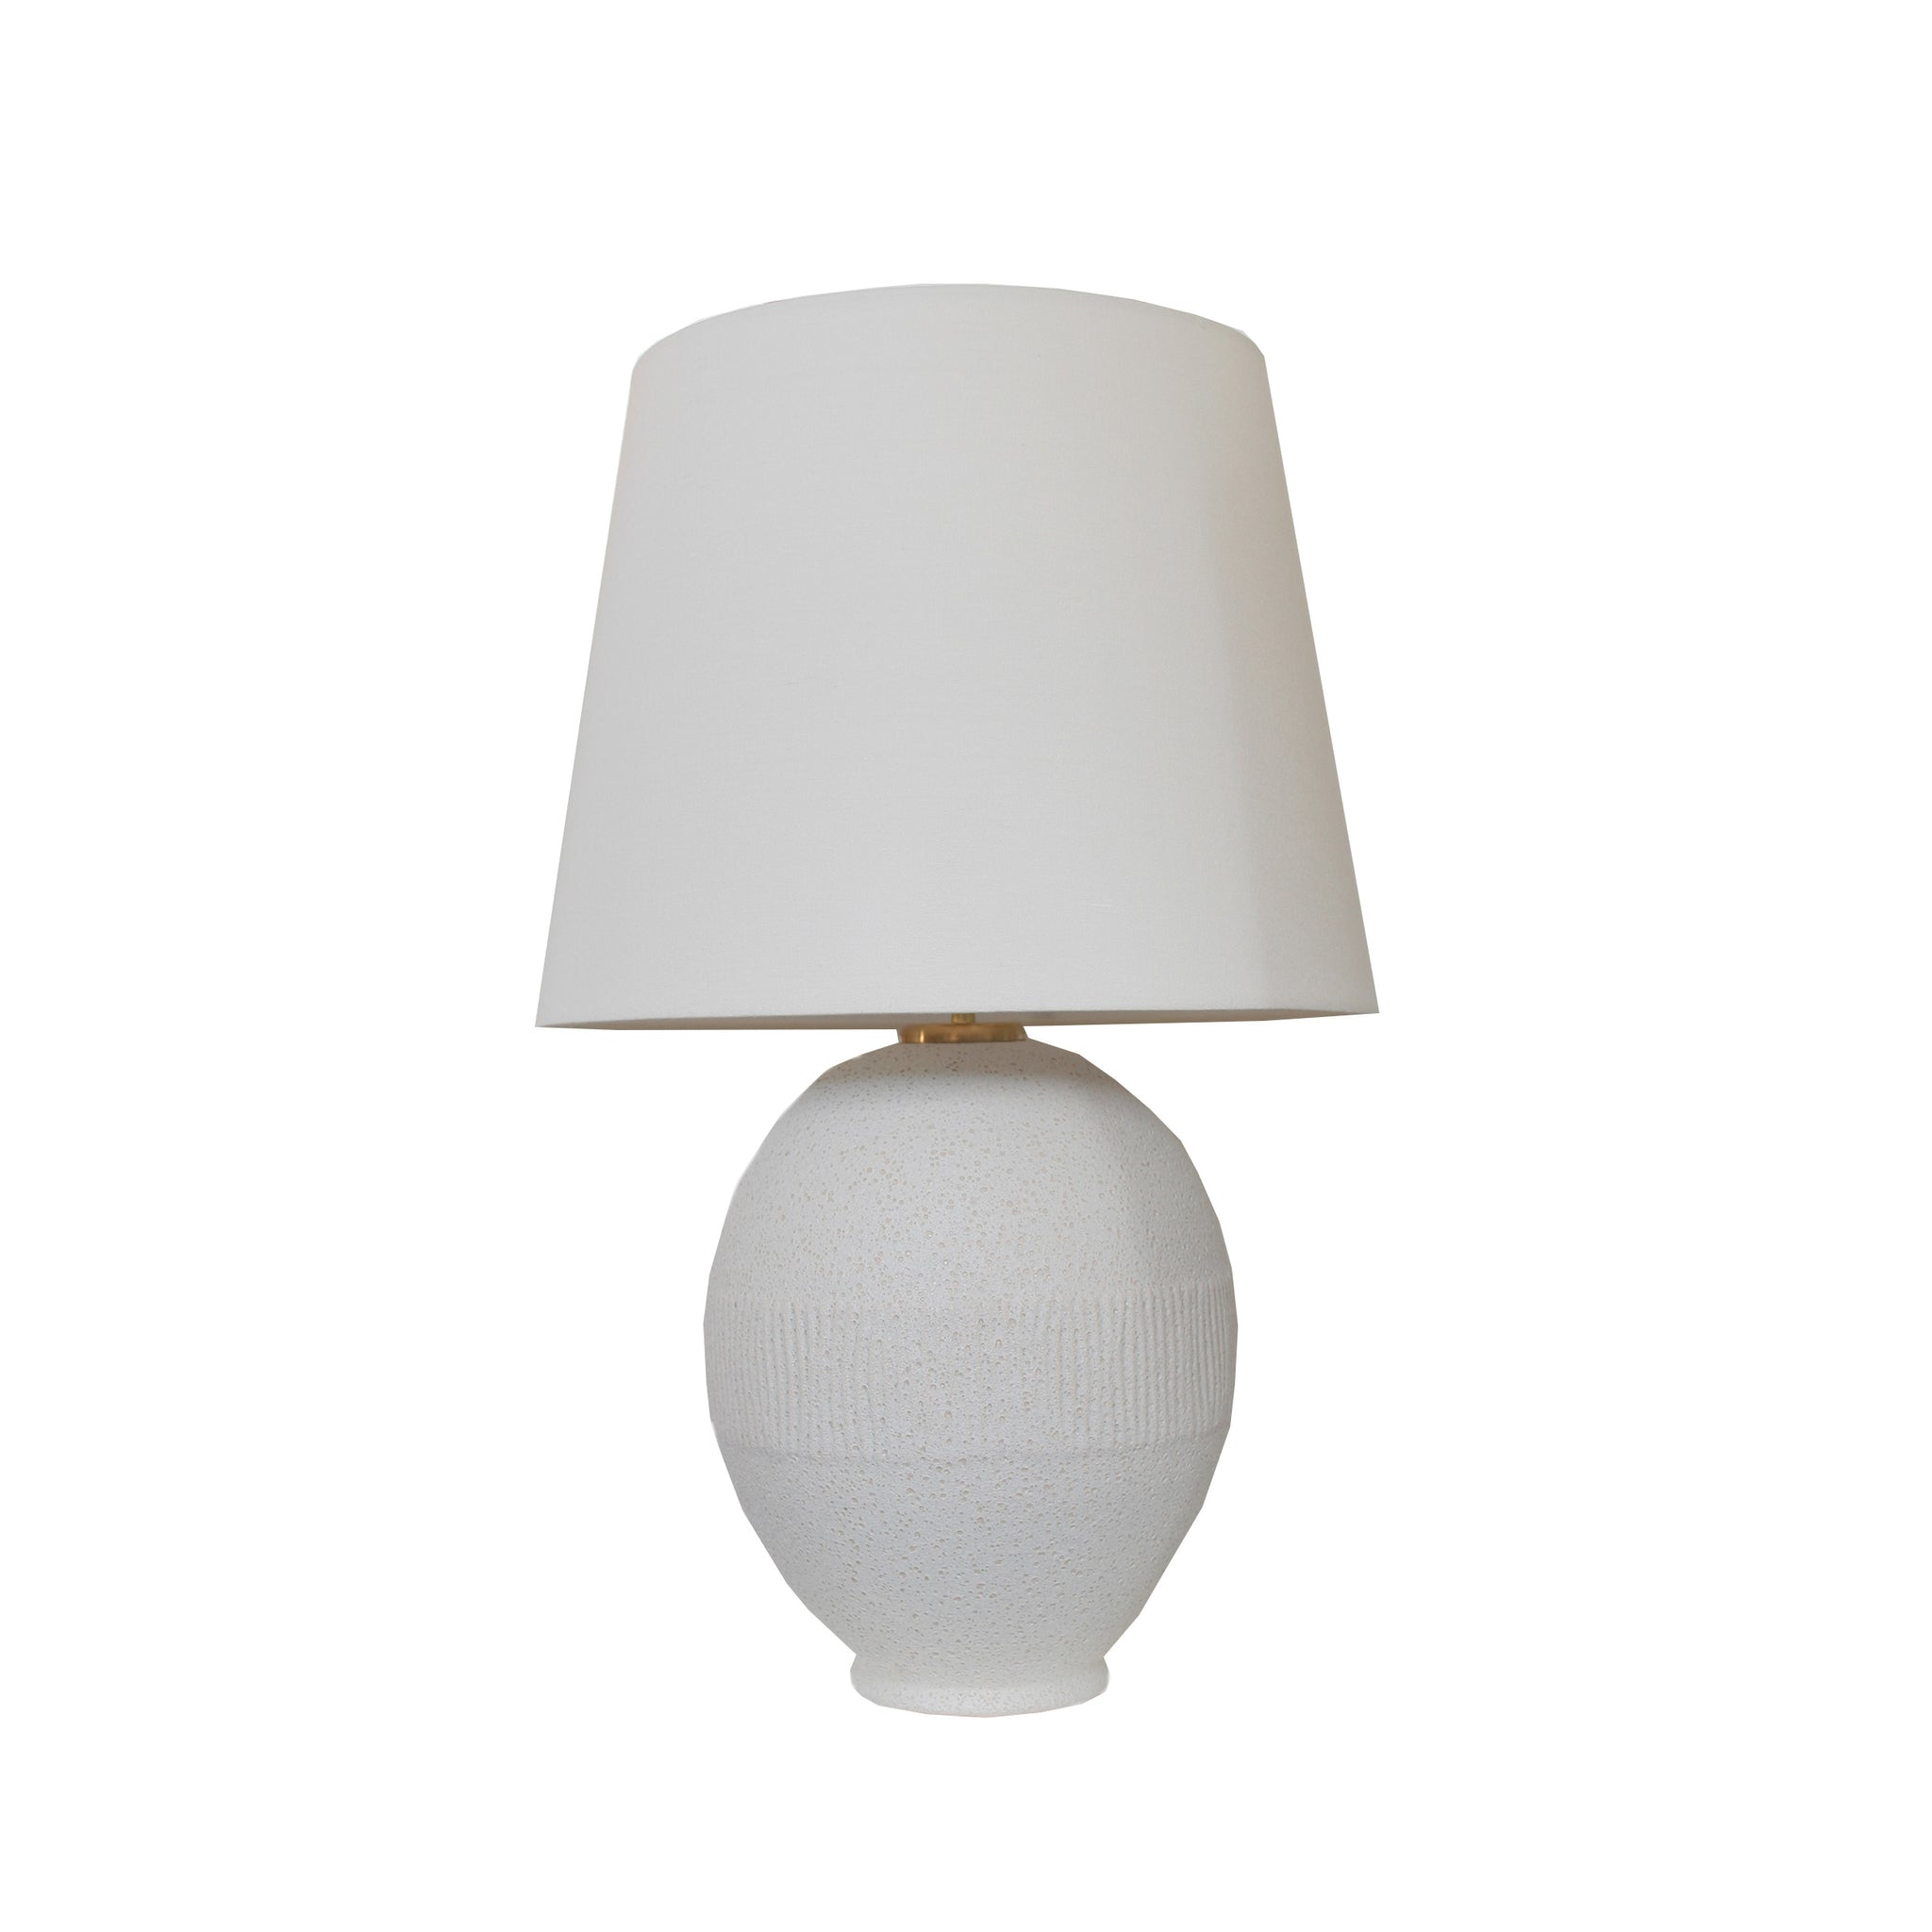 Toulon Table Lamp by AERIN for Visual Comfort & Co.